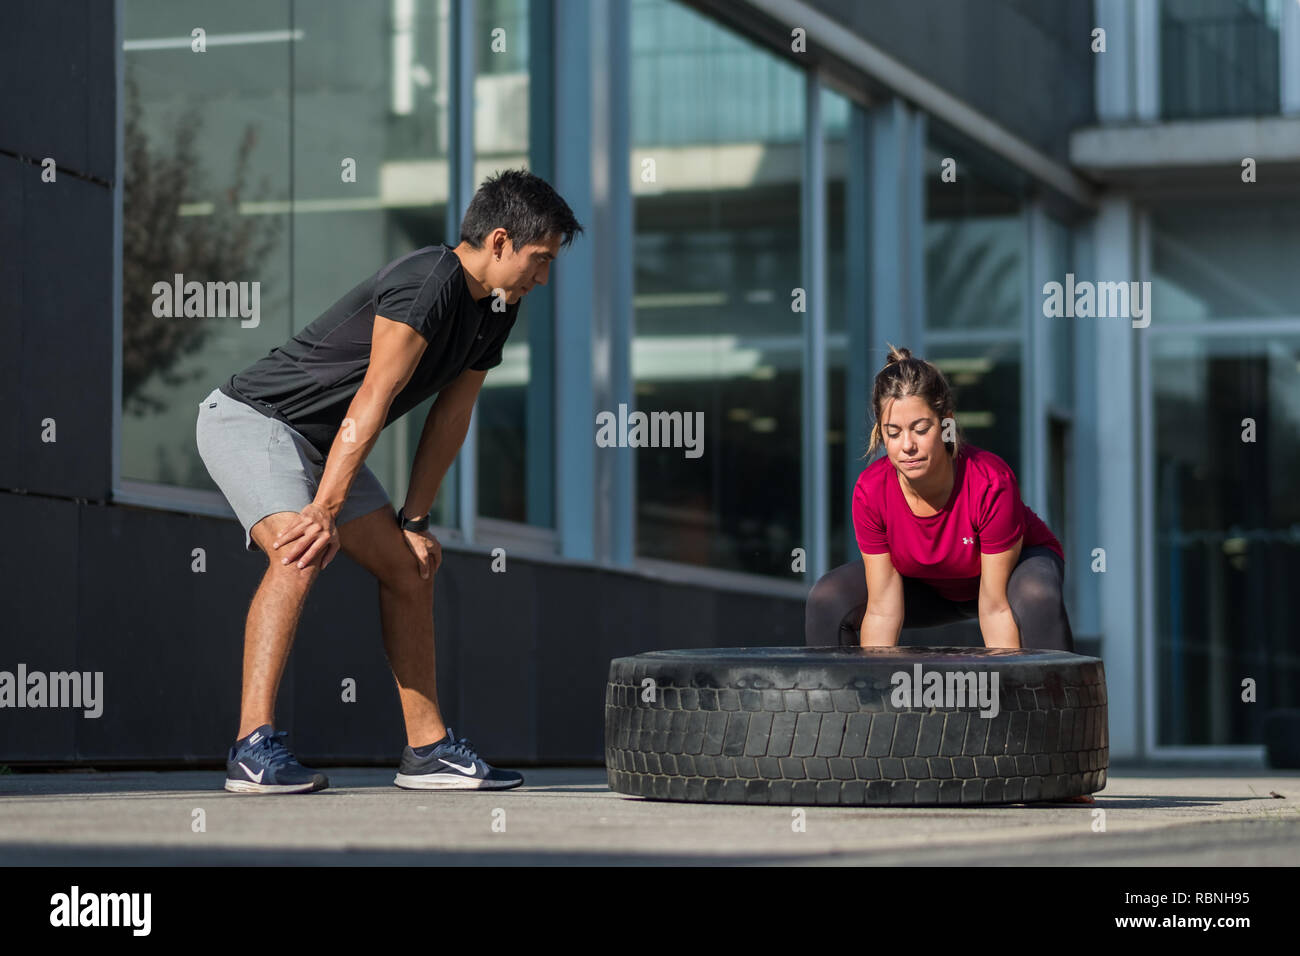 Personal trainer supervising young woman performing a tire flip over - Stock Image